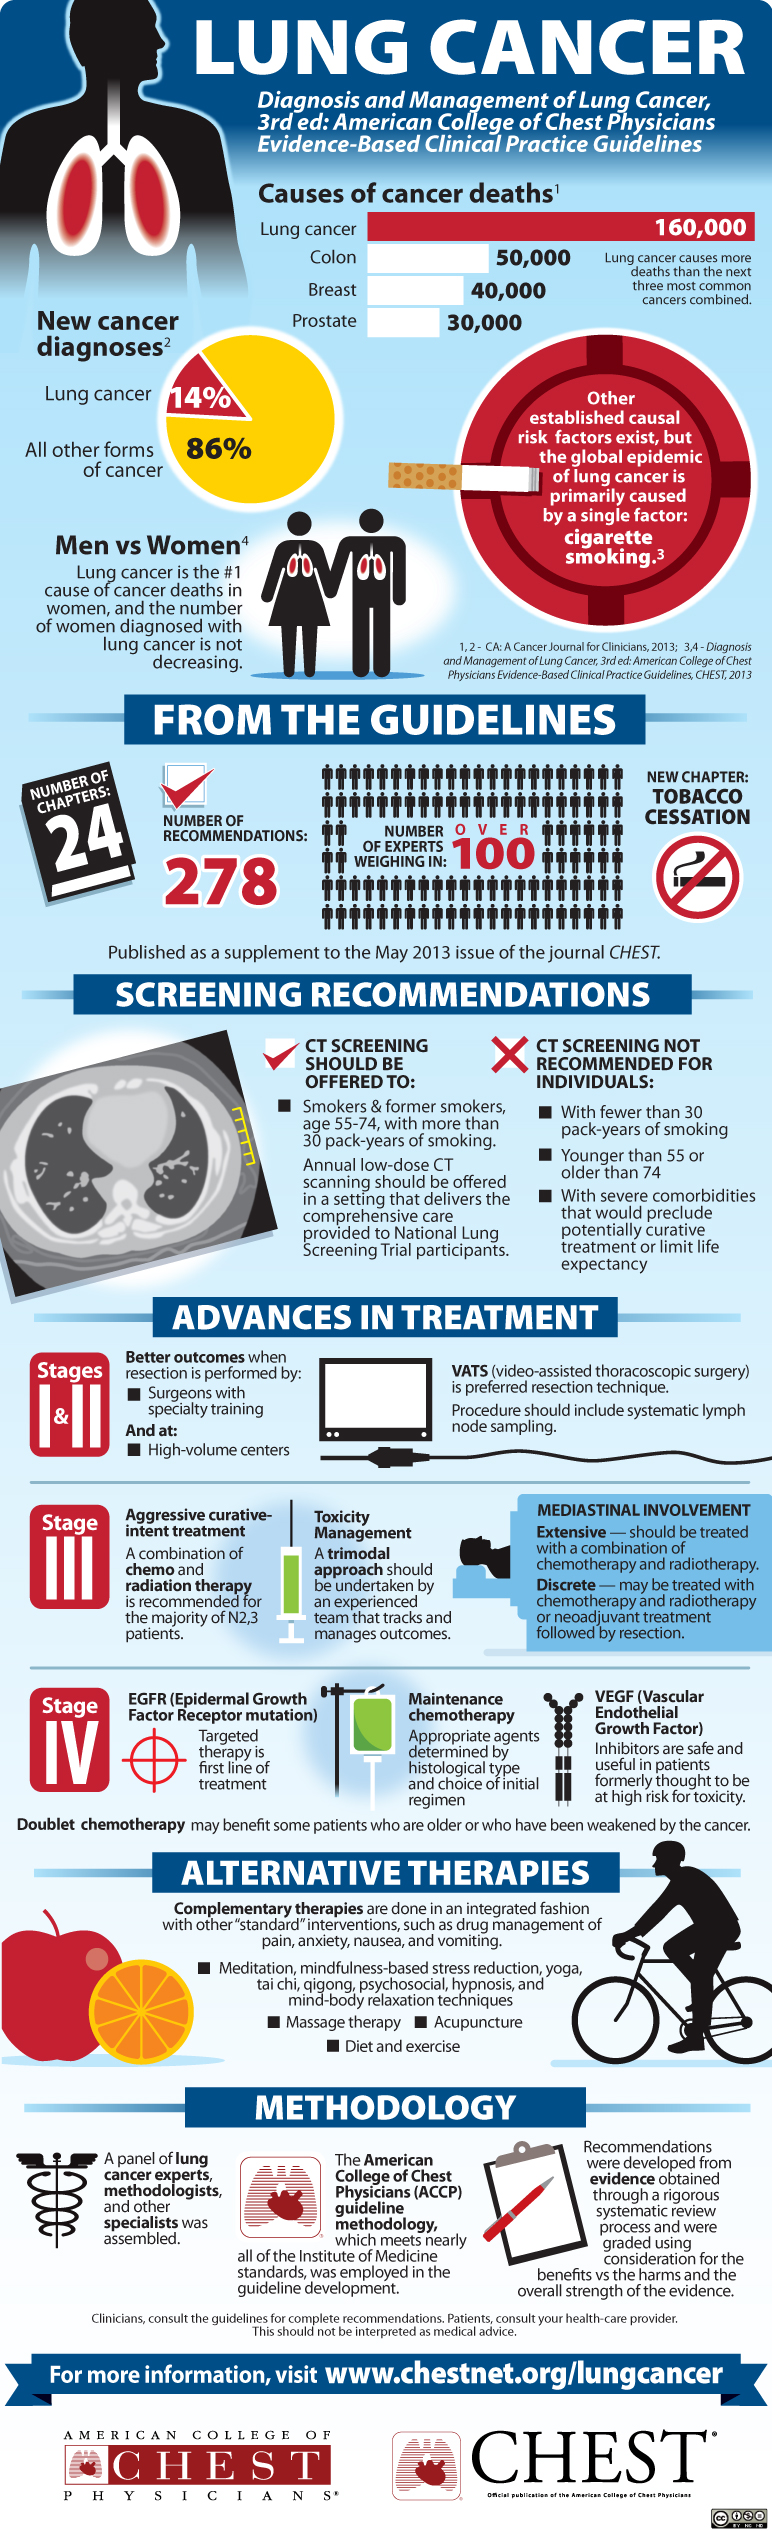 http://www.chestnet.org/~/media/chesnetorg/Guidelines%20and%20Resources/Images/Guidelines%20and%20Consensus%20Statements/LungCancerInfographic.ashx